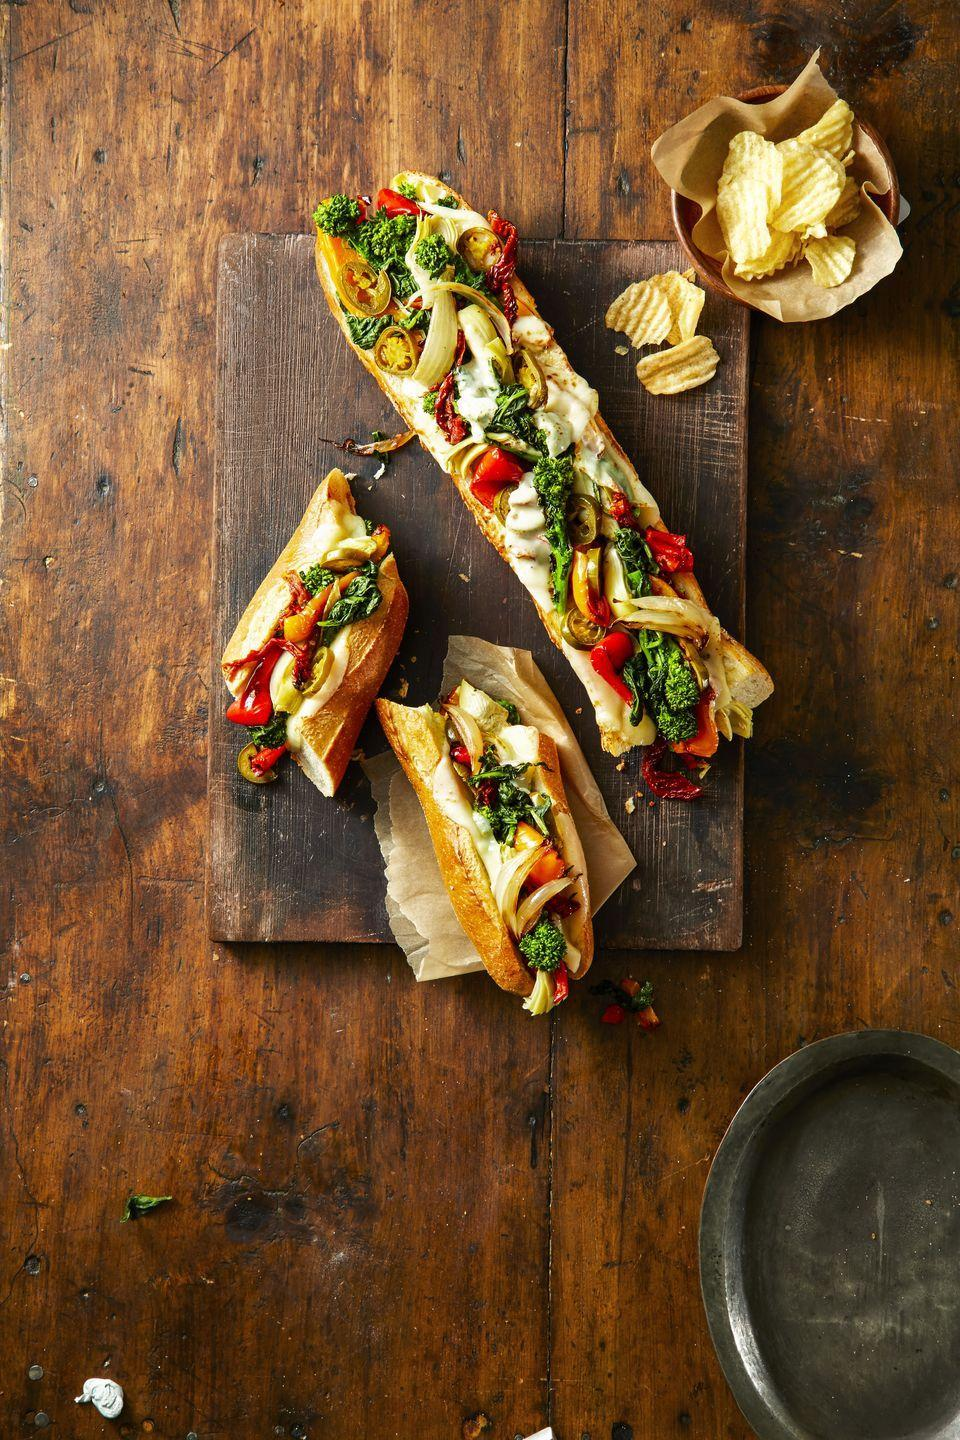 "<p>These party-friendly sandwiches are fully loaded with tons of cheese and veggies that guests won't even miss the meat. </p><p><em><a href=""https://www.goodhousekeeping.com/food-recipes/a42217/provolone-veggie-party-subs-recipe/"" rel=""nofollow noopener"" target=""_blank"" data-ylk=""slk:Get the recipe for Provolone Veggie Party Subs »"" class=""link rapid-noclick-resp""><span class=""redactor-invisible-space""><span class=""redactor-invisible-space""><em>Get the recipe for Provolone Veggie Party Subs »</em></span></span></a></em><br></p>"